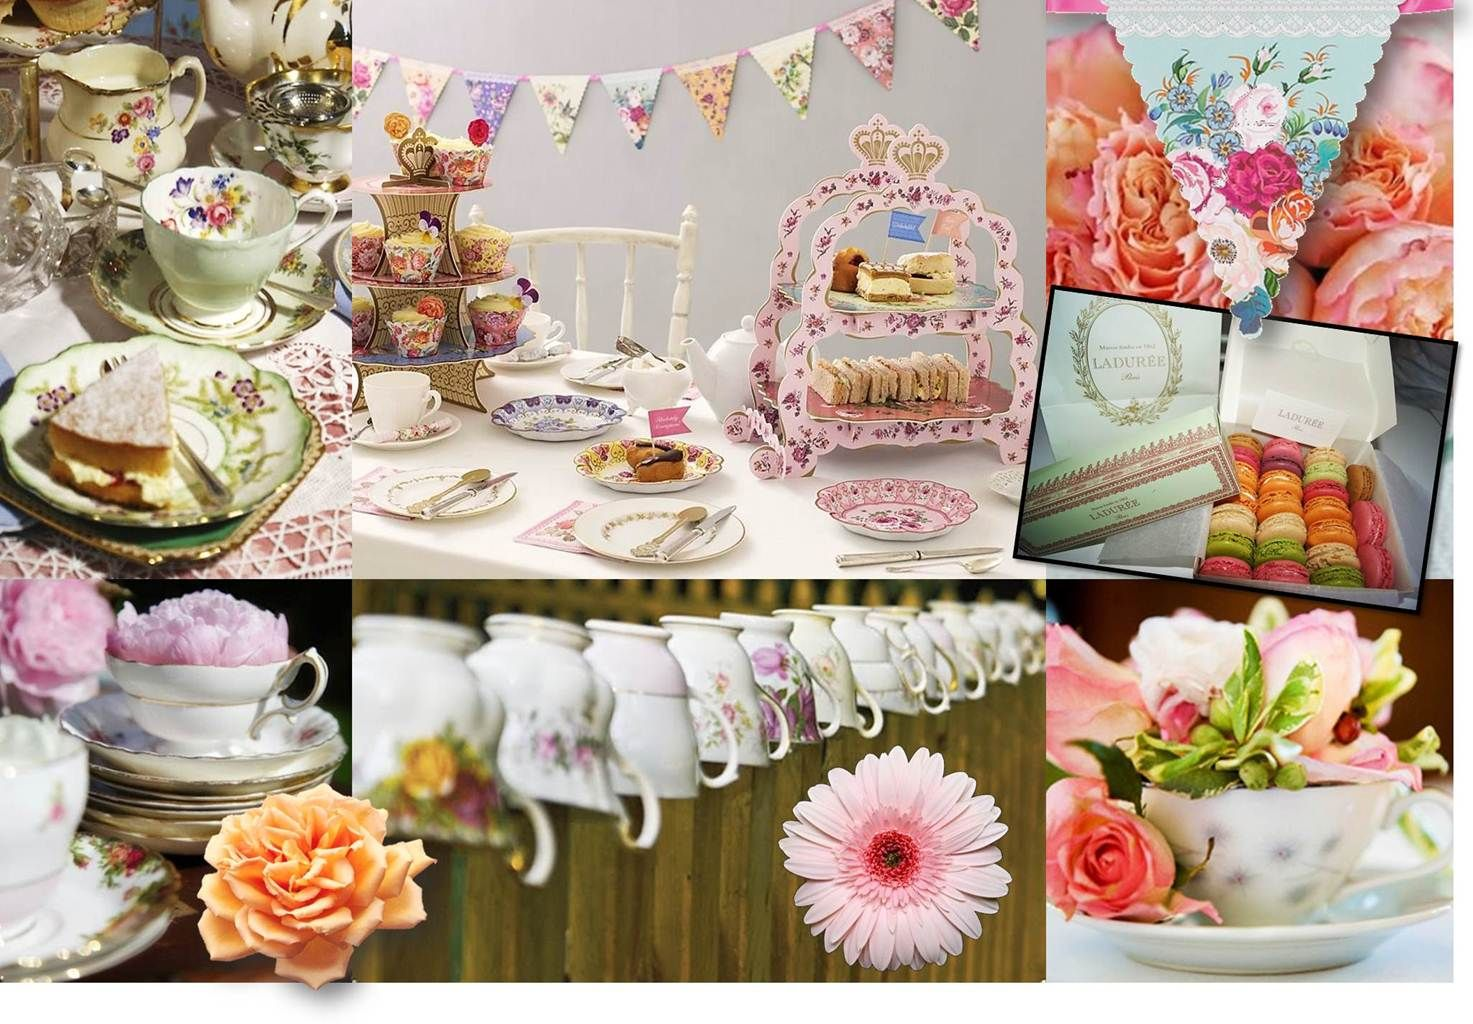 Mad hatter tea party decoration ideas - Image Detail For Jubilee Olympic Party Theme Ideas